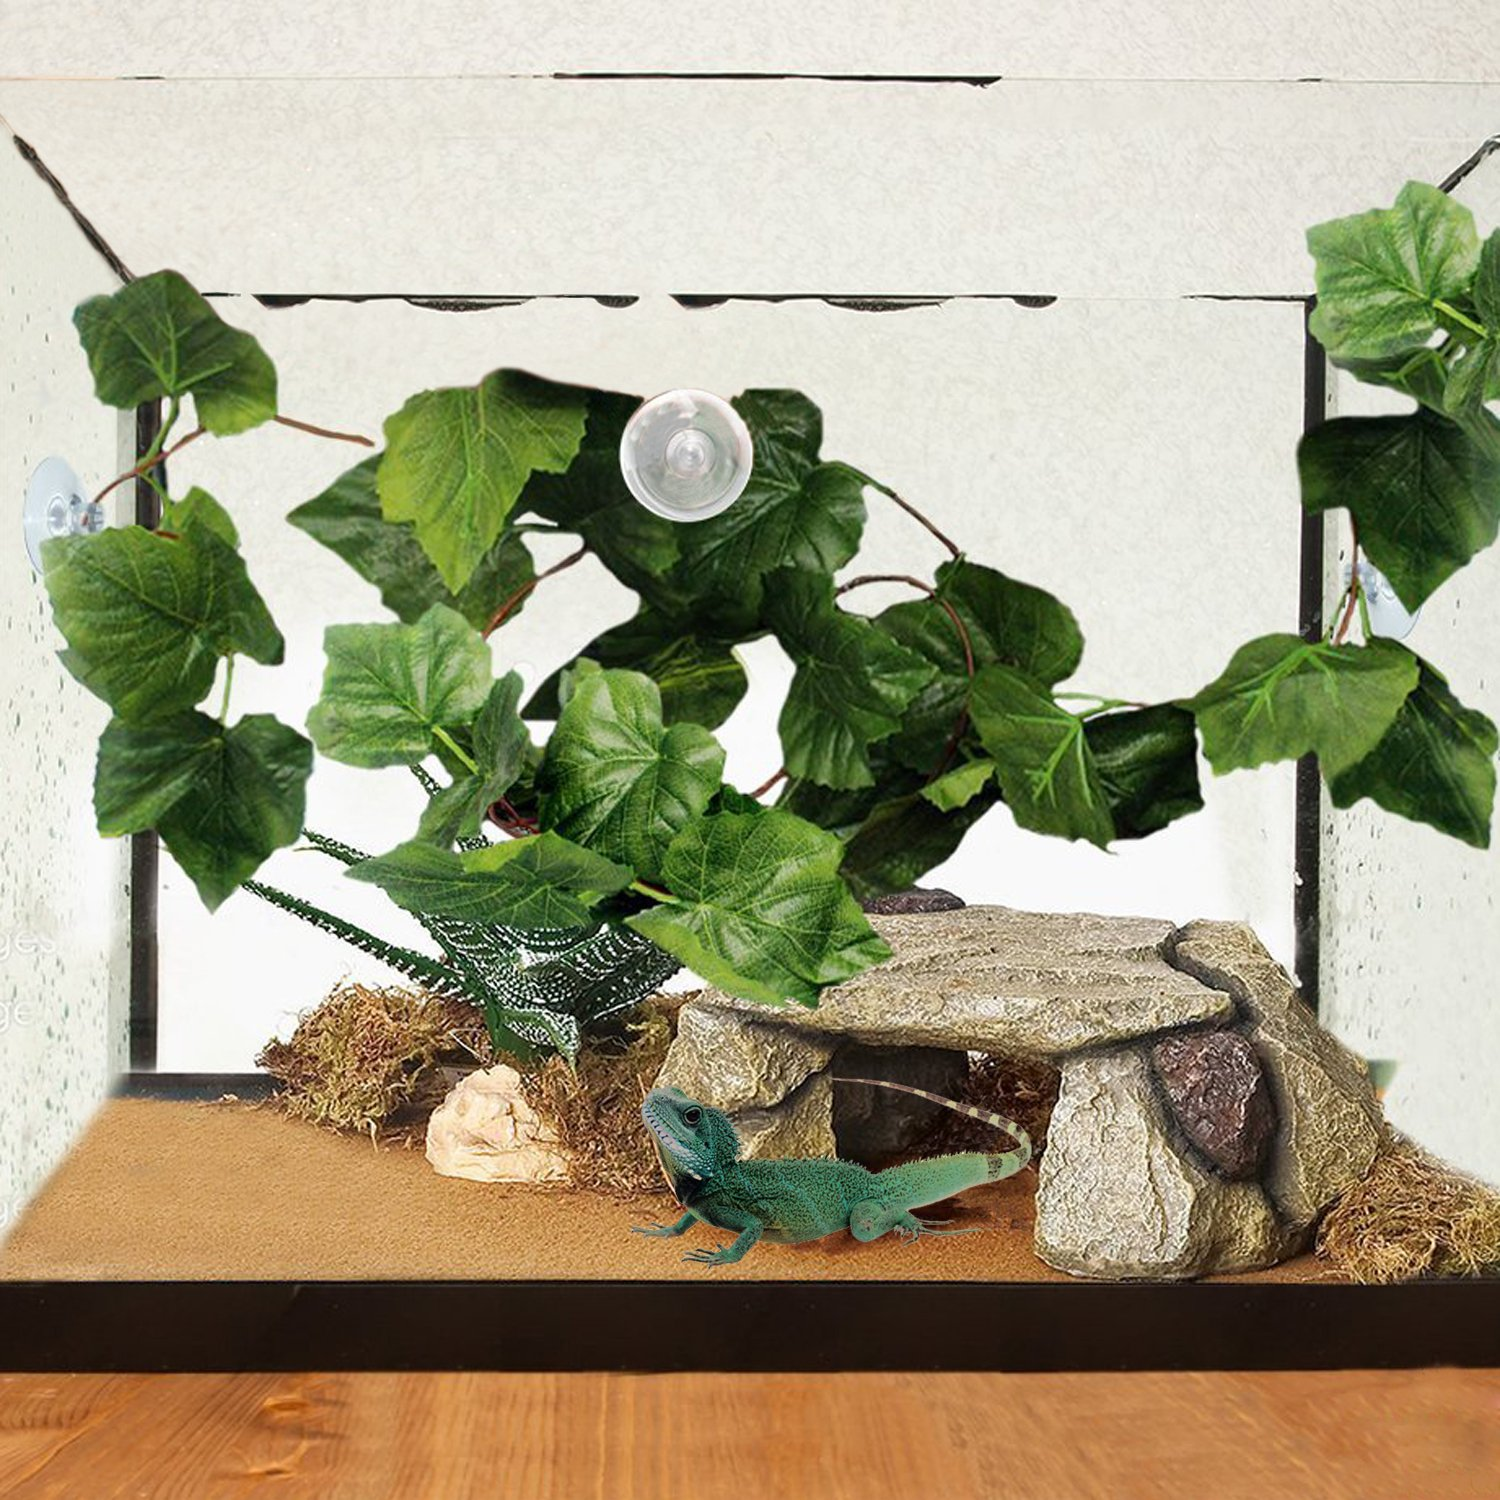 Amazon Com Bwogue Artificial Reptile Plants With Sunction Cups